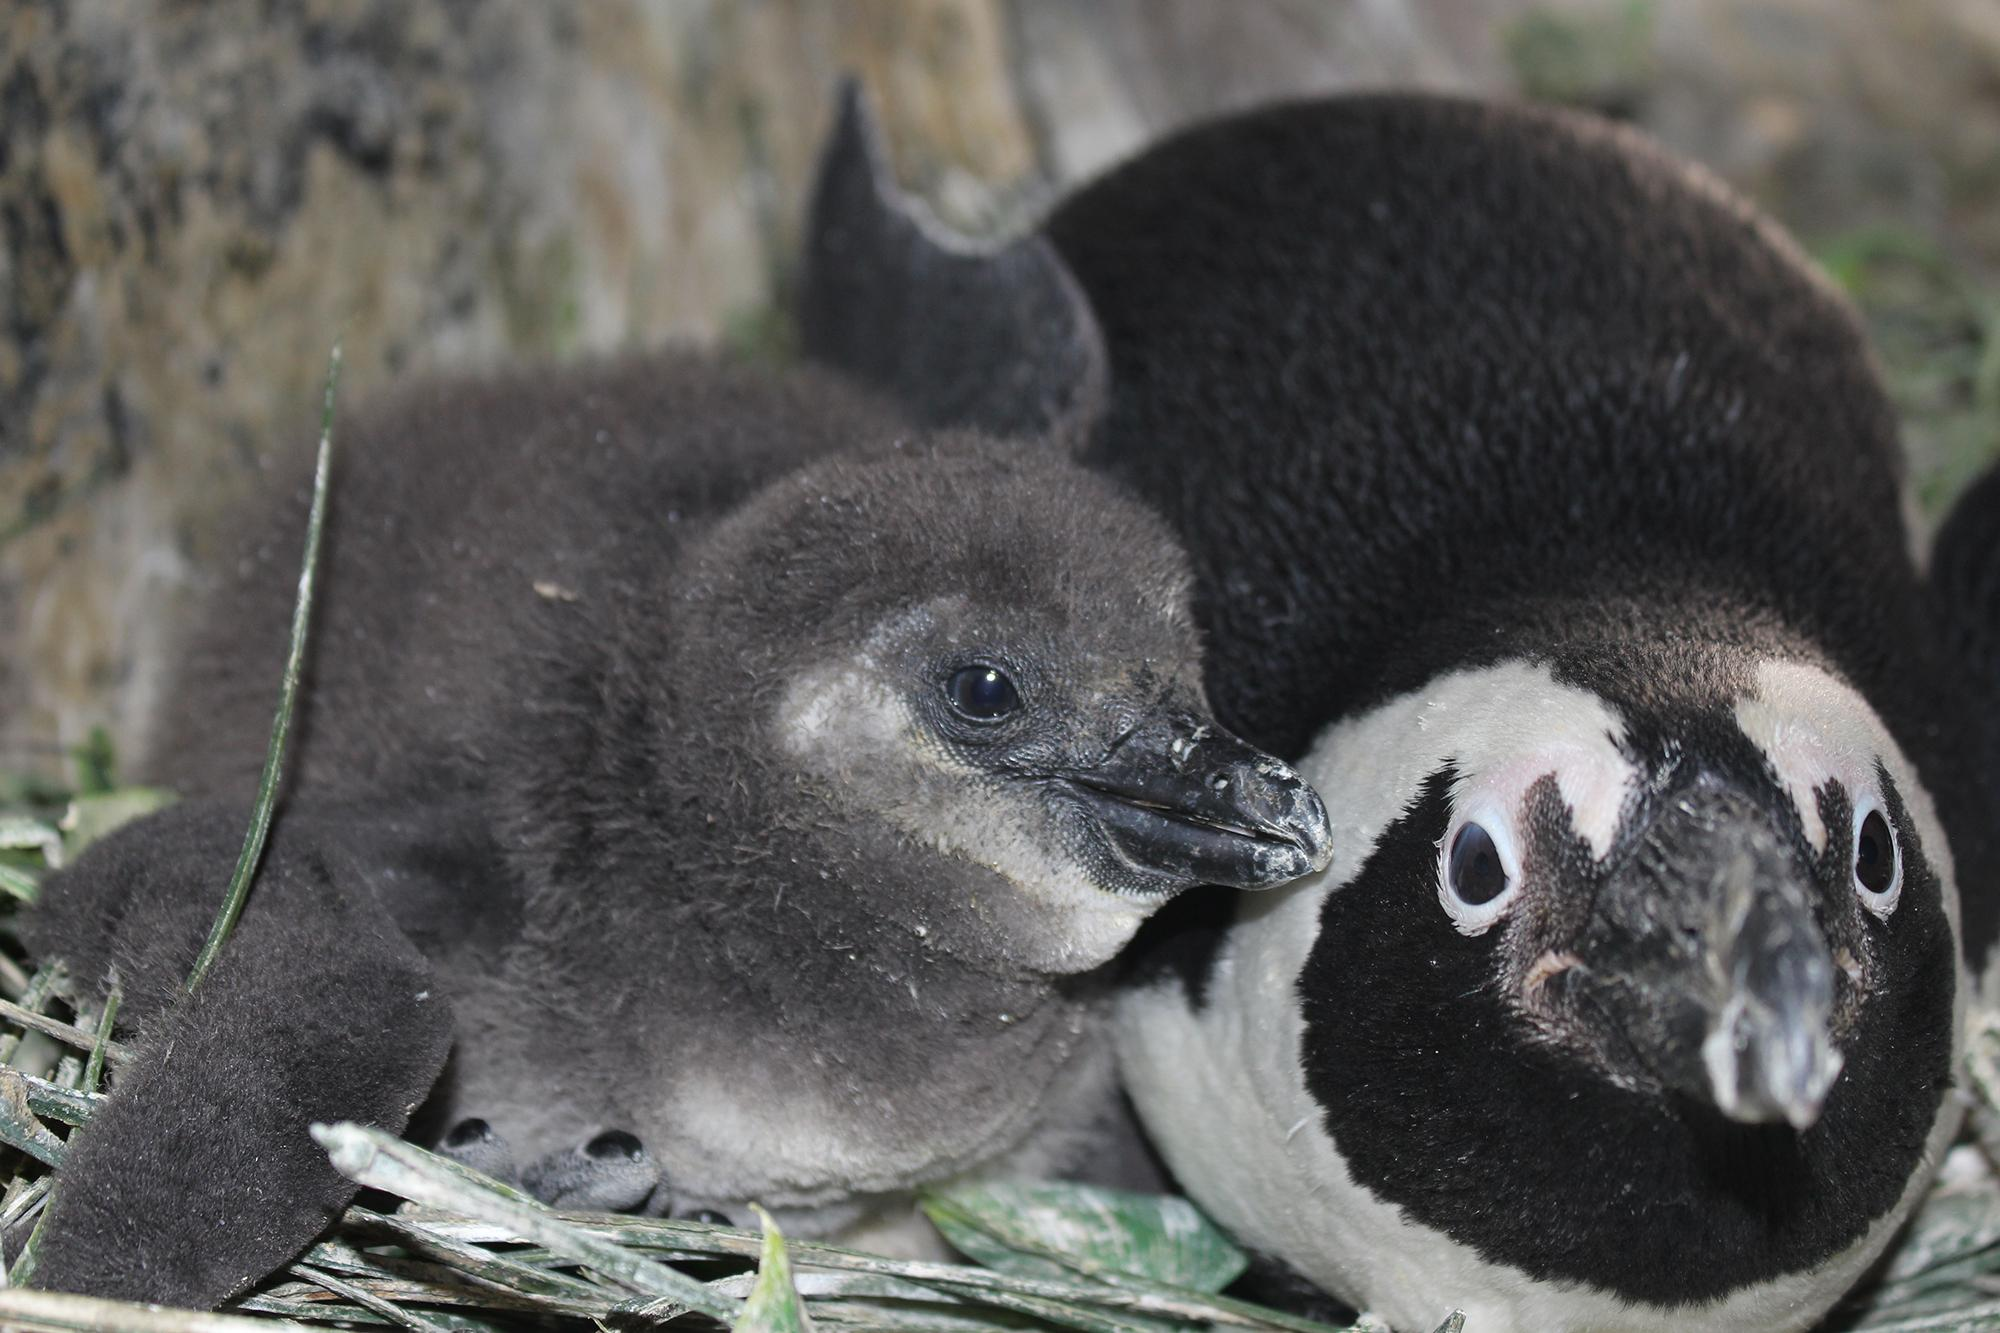 An African penguin chick hatched Feb. 10 at Lincoln Park Zoo, pictured here at 21 days old. (Courtesy Lincoln Park Zoo)